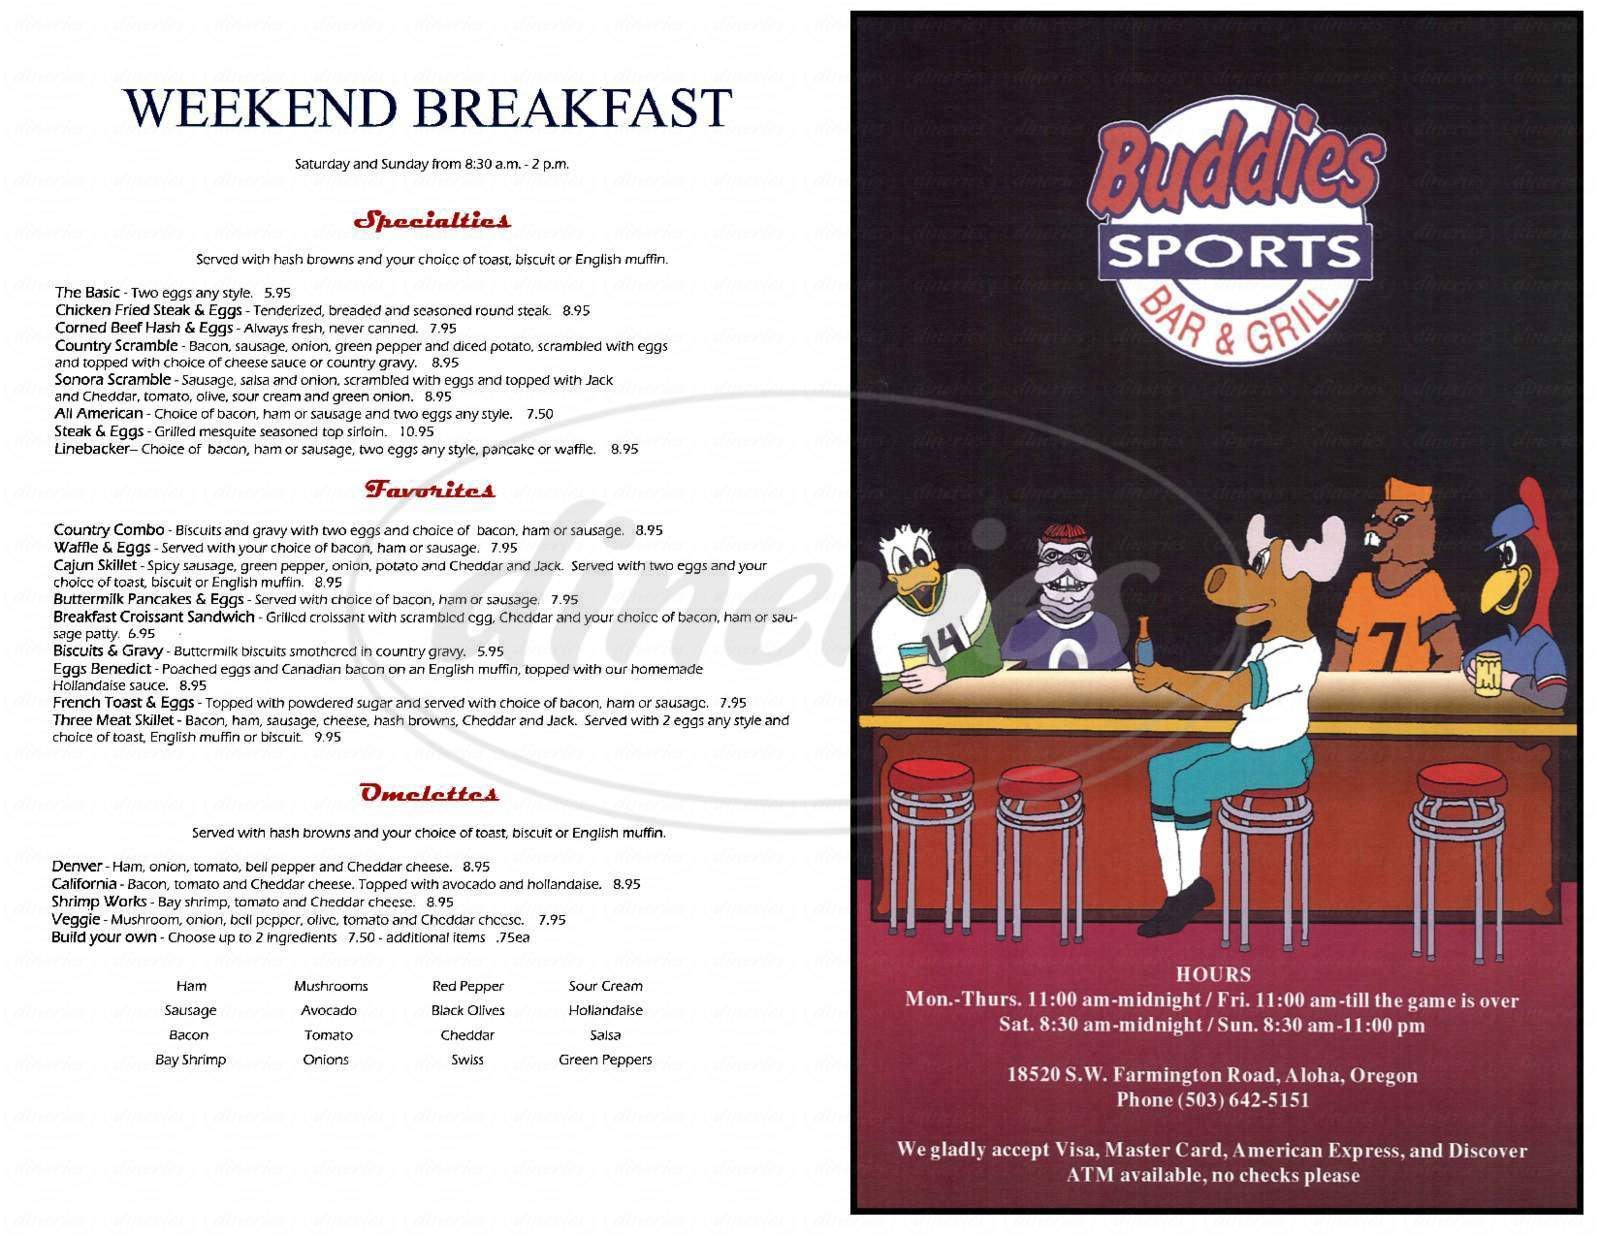 menu for Buddies Sports Bar & Grill